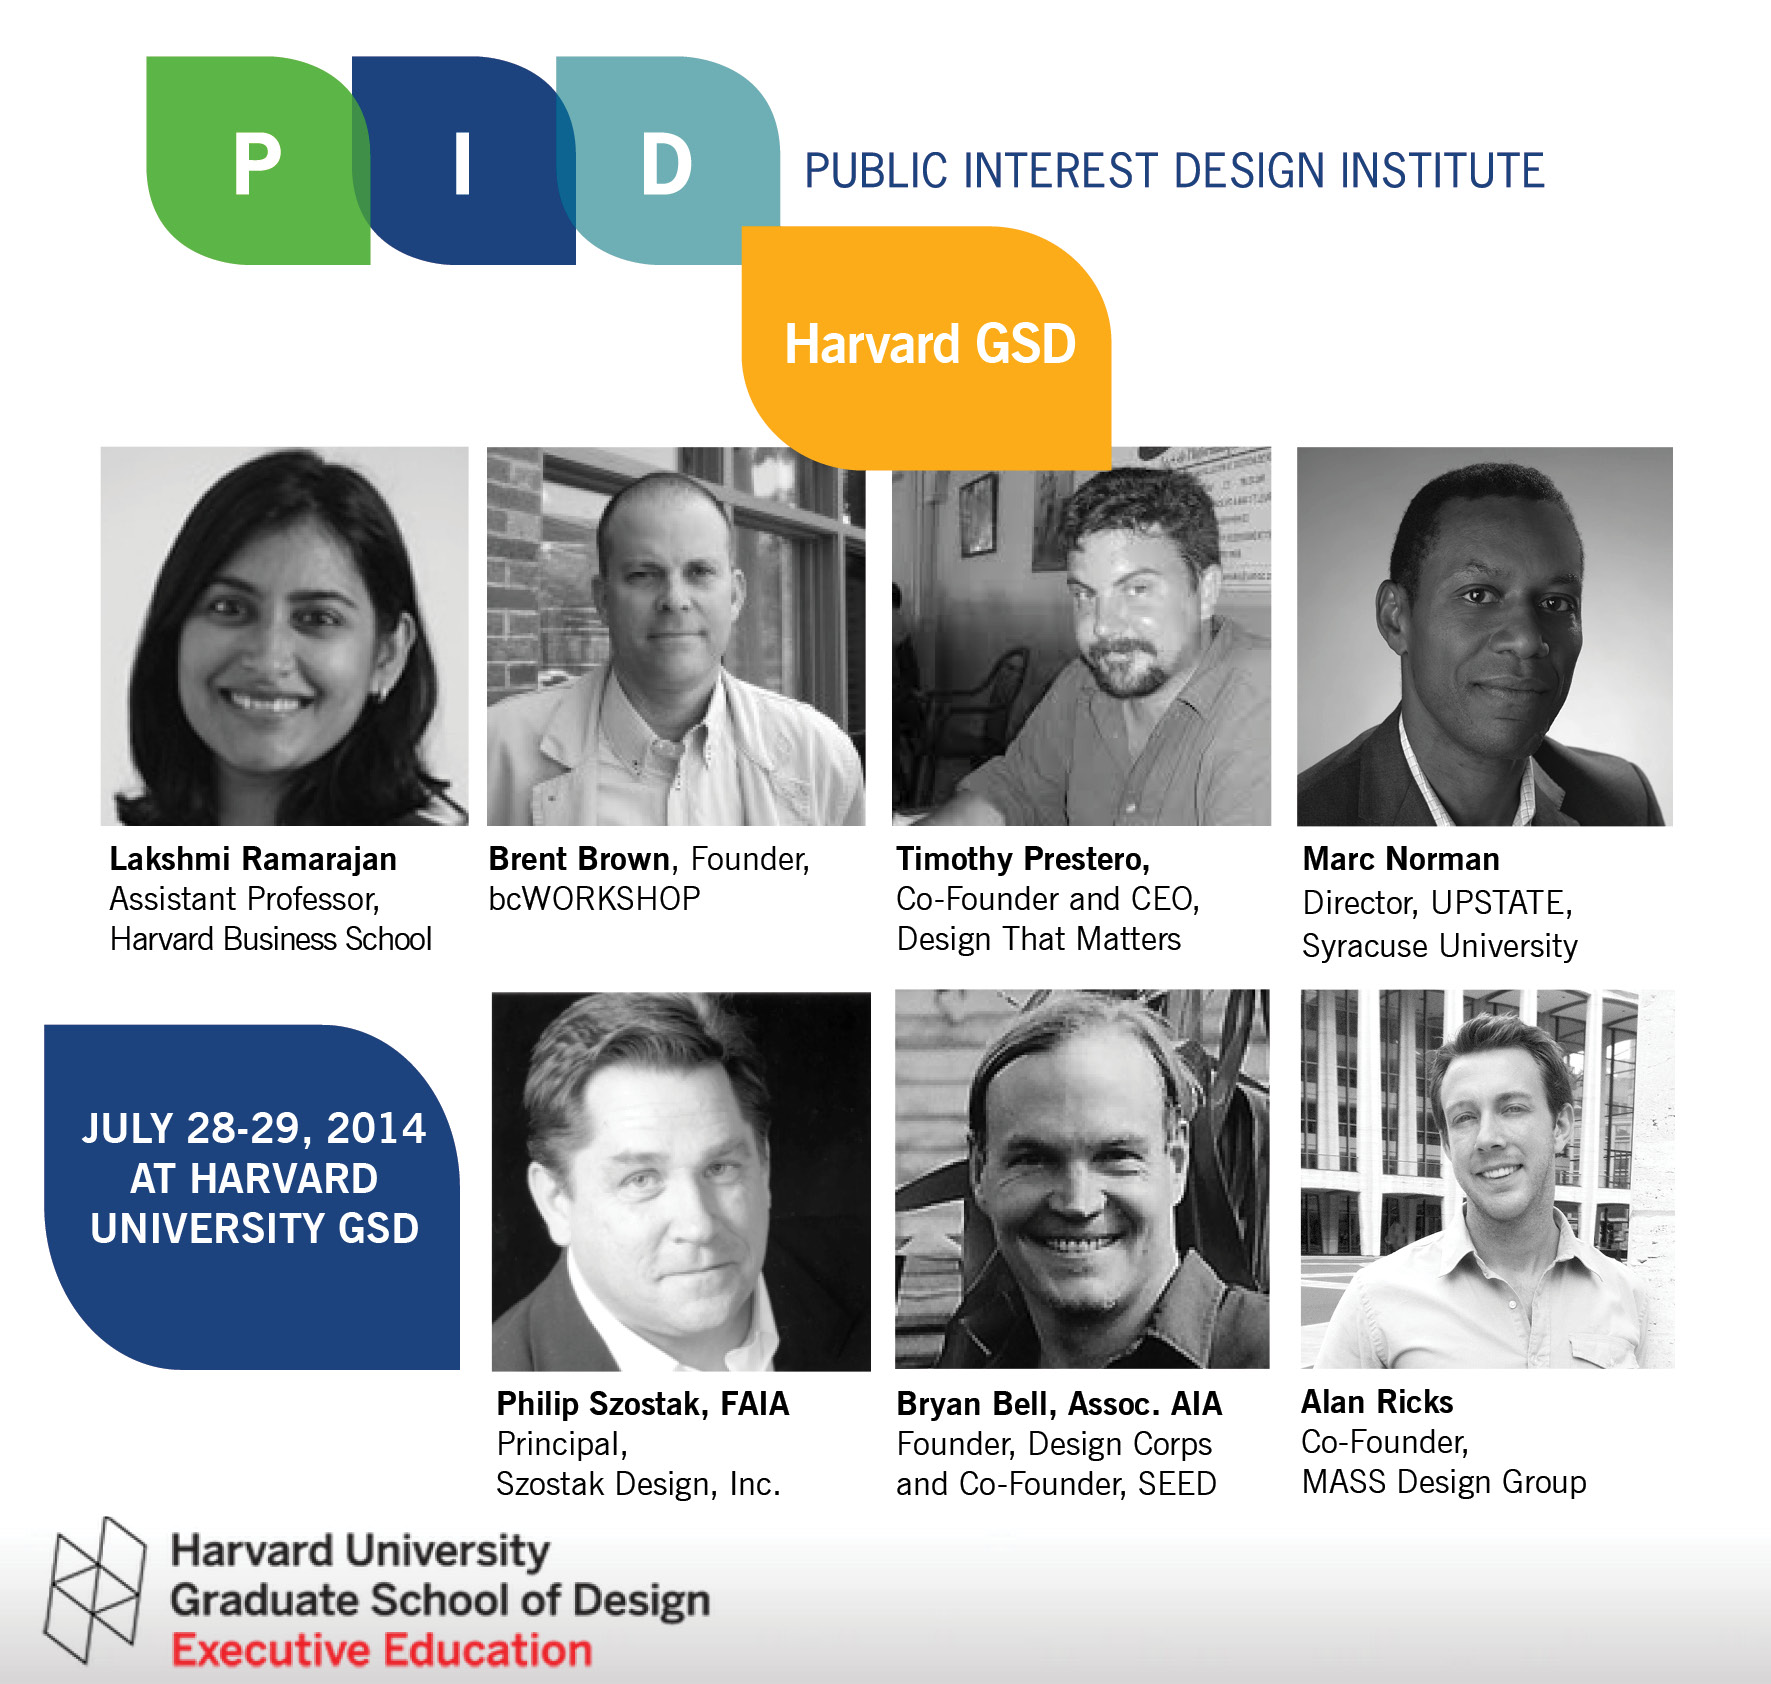 Harvard GSD 2014 Speakers 2